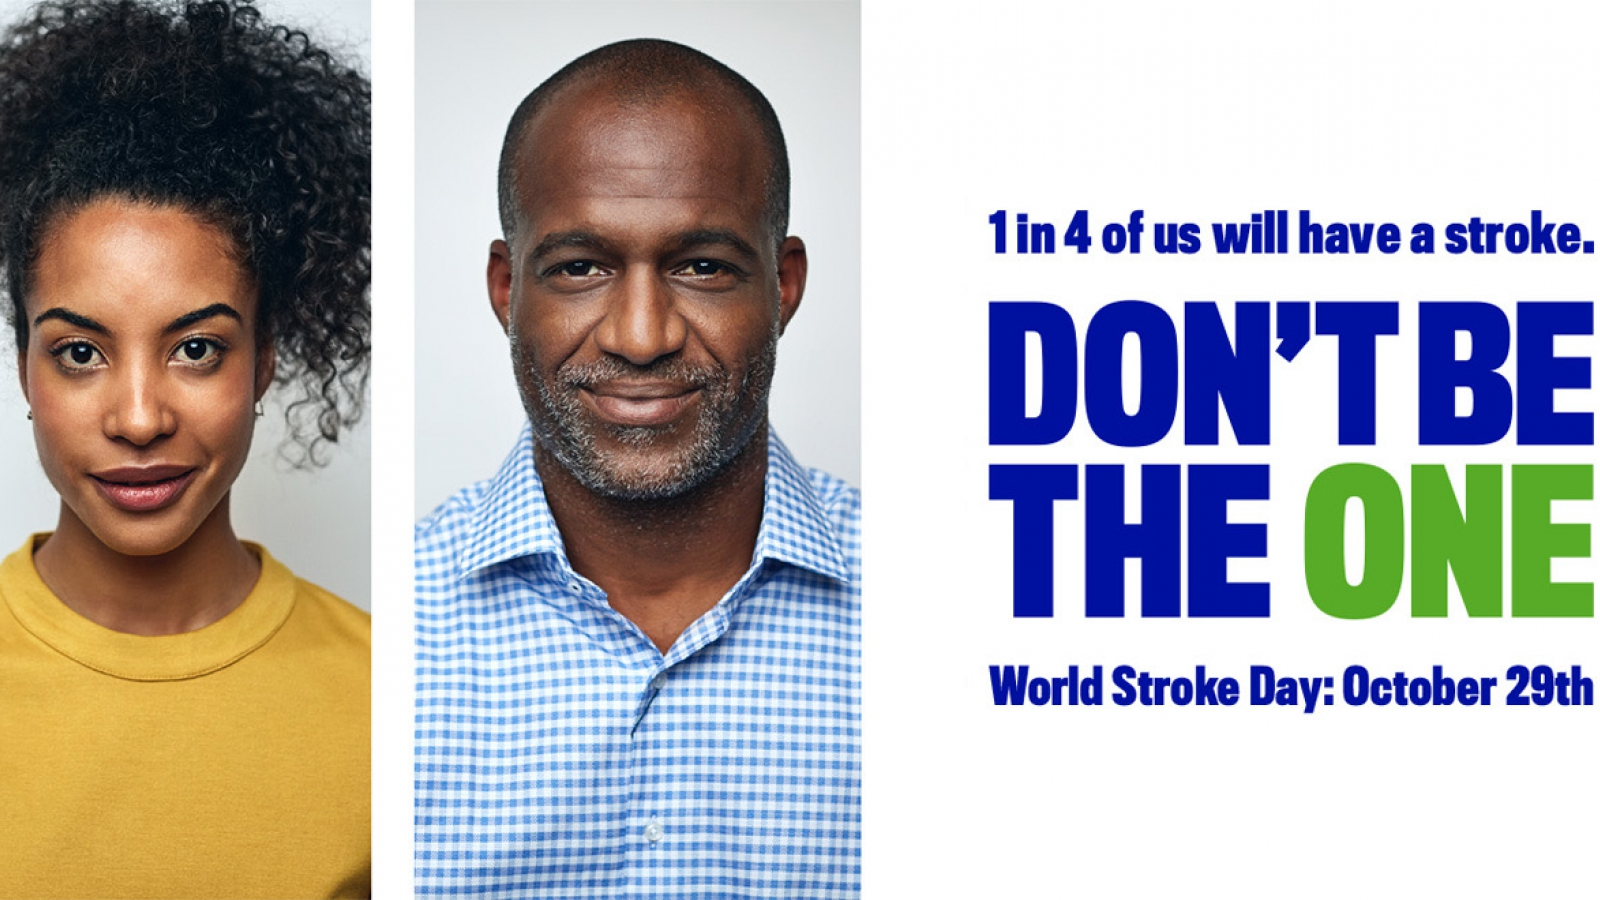 World Stroke Day 2019 campaign